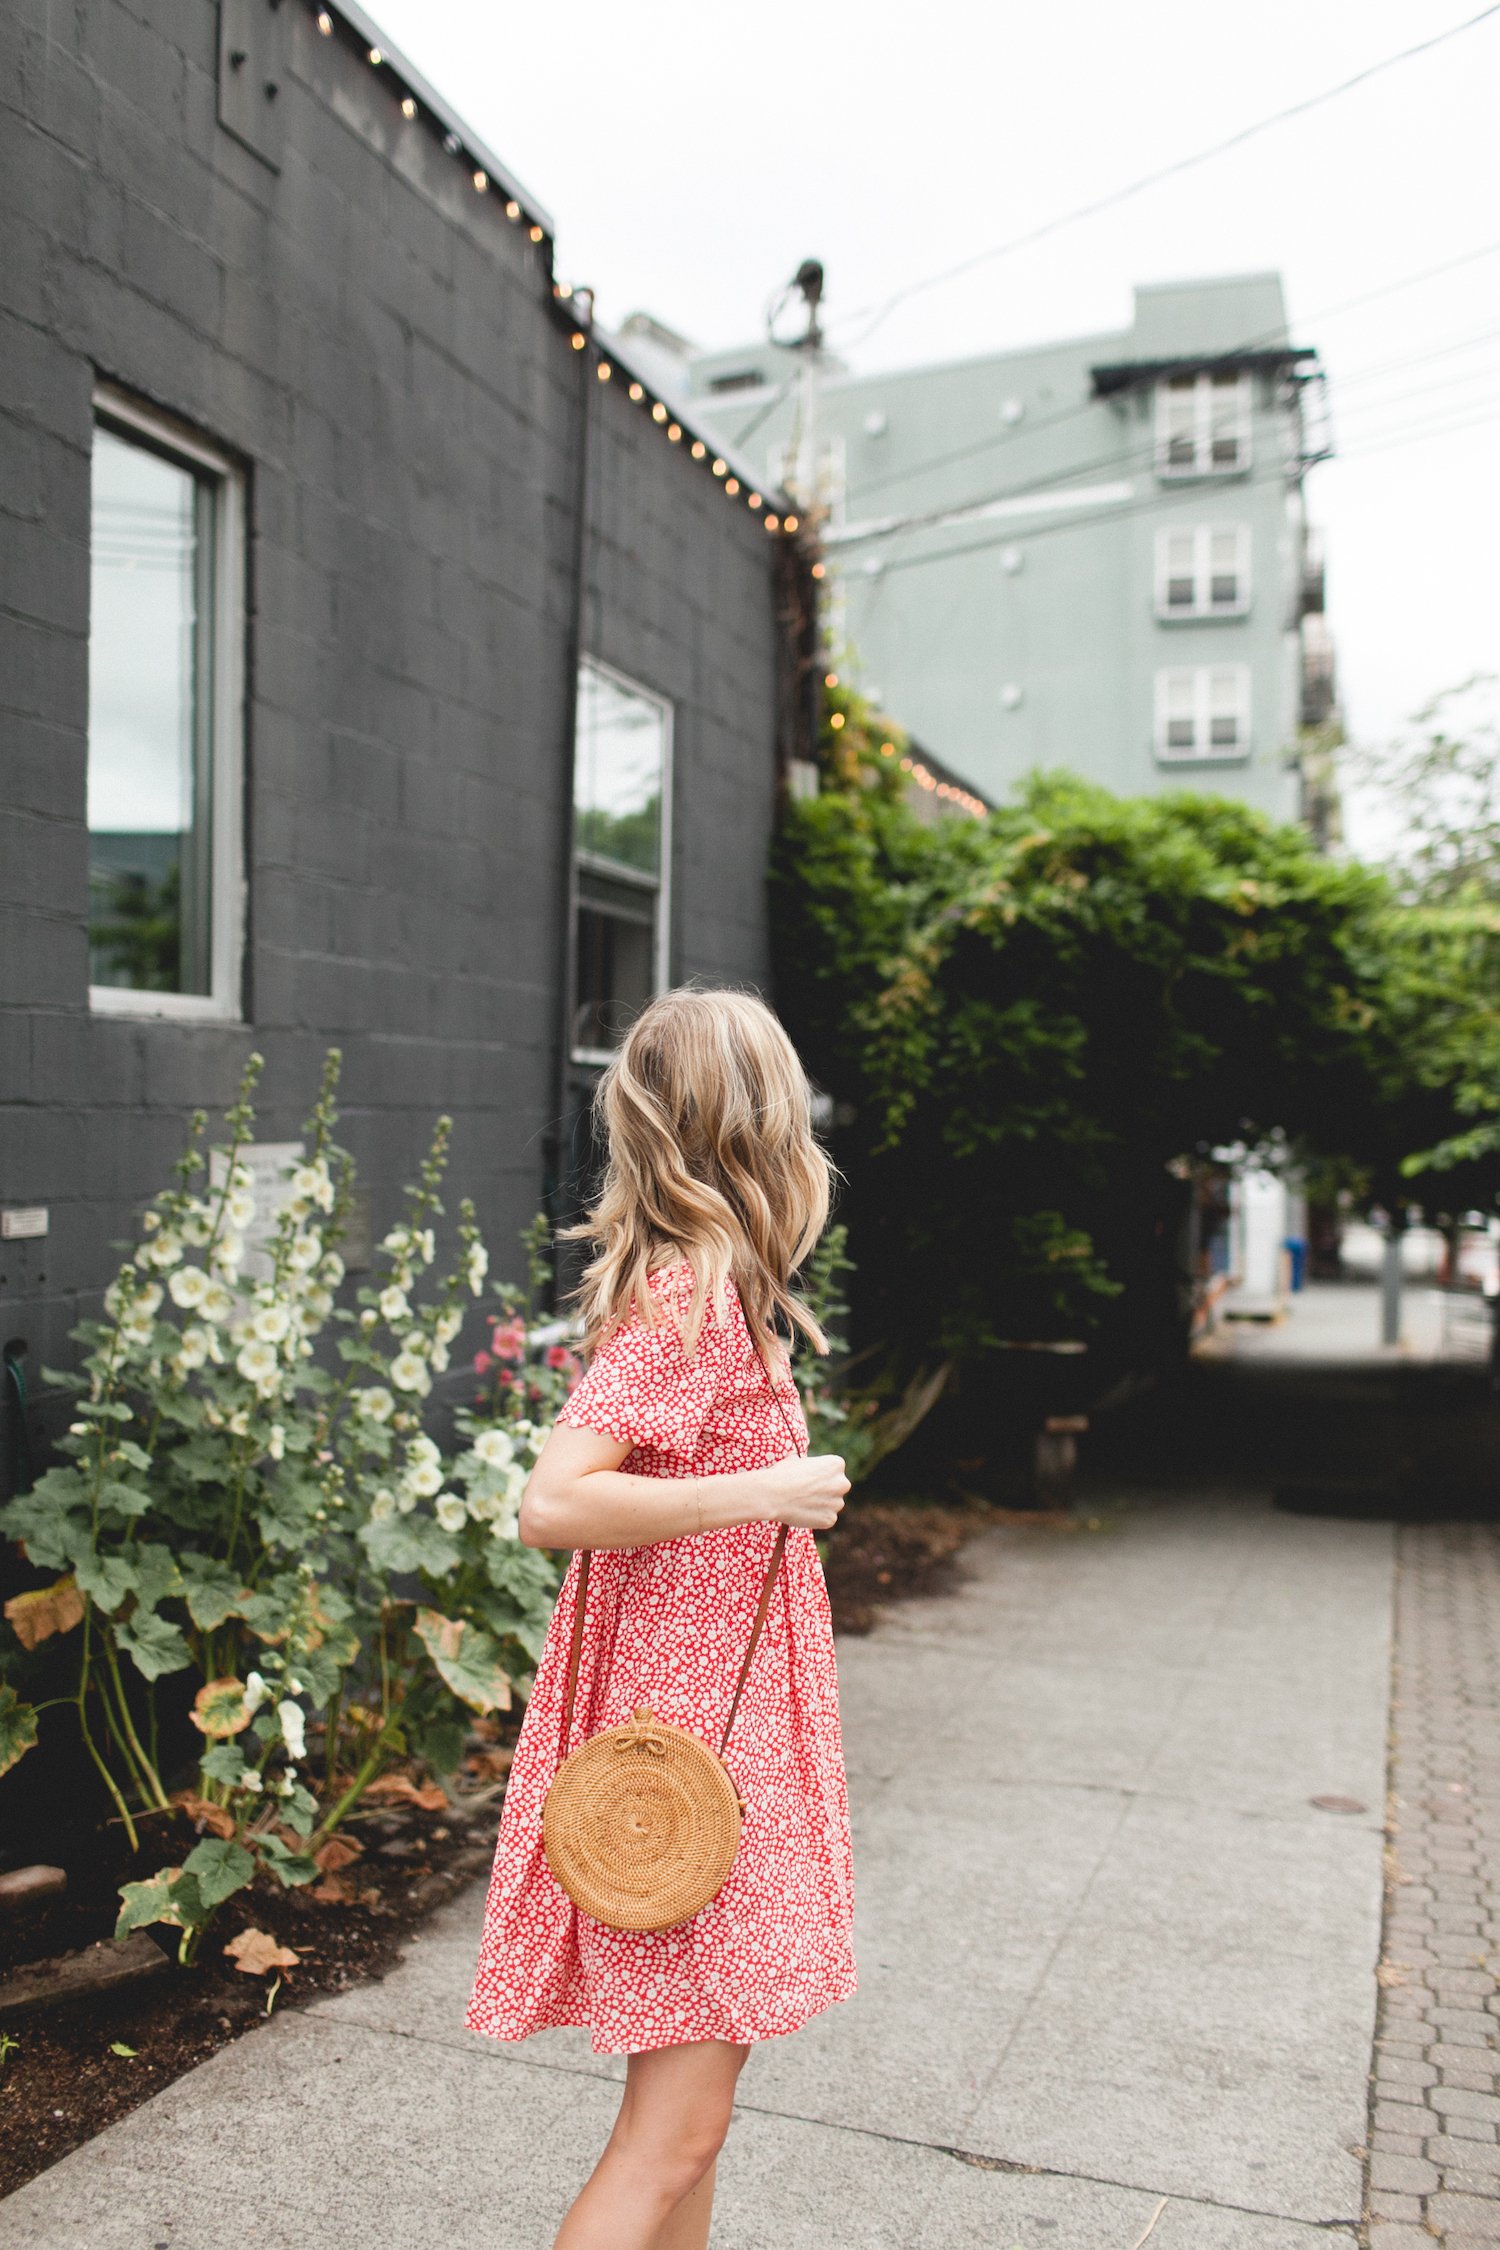 sezane, fremont, seattle, style, mini dress, daisy dress, 90s style, red dress, summer outfits, cute summer clothes, white sneakers, straw circle bag